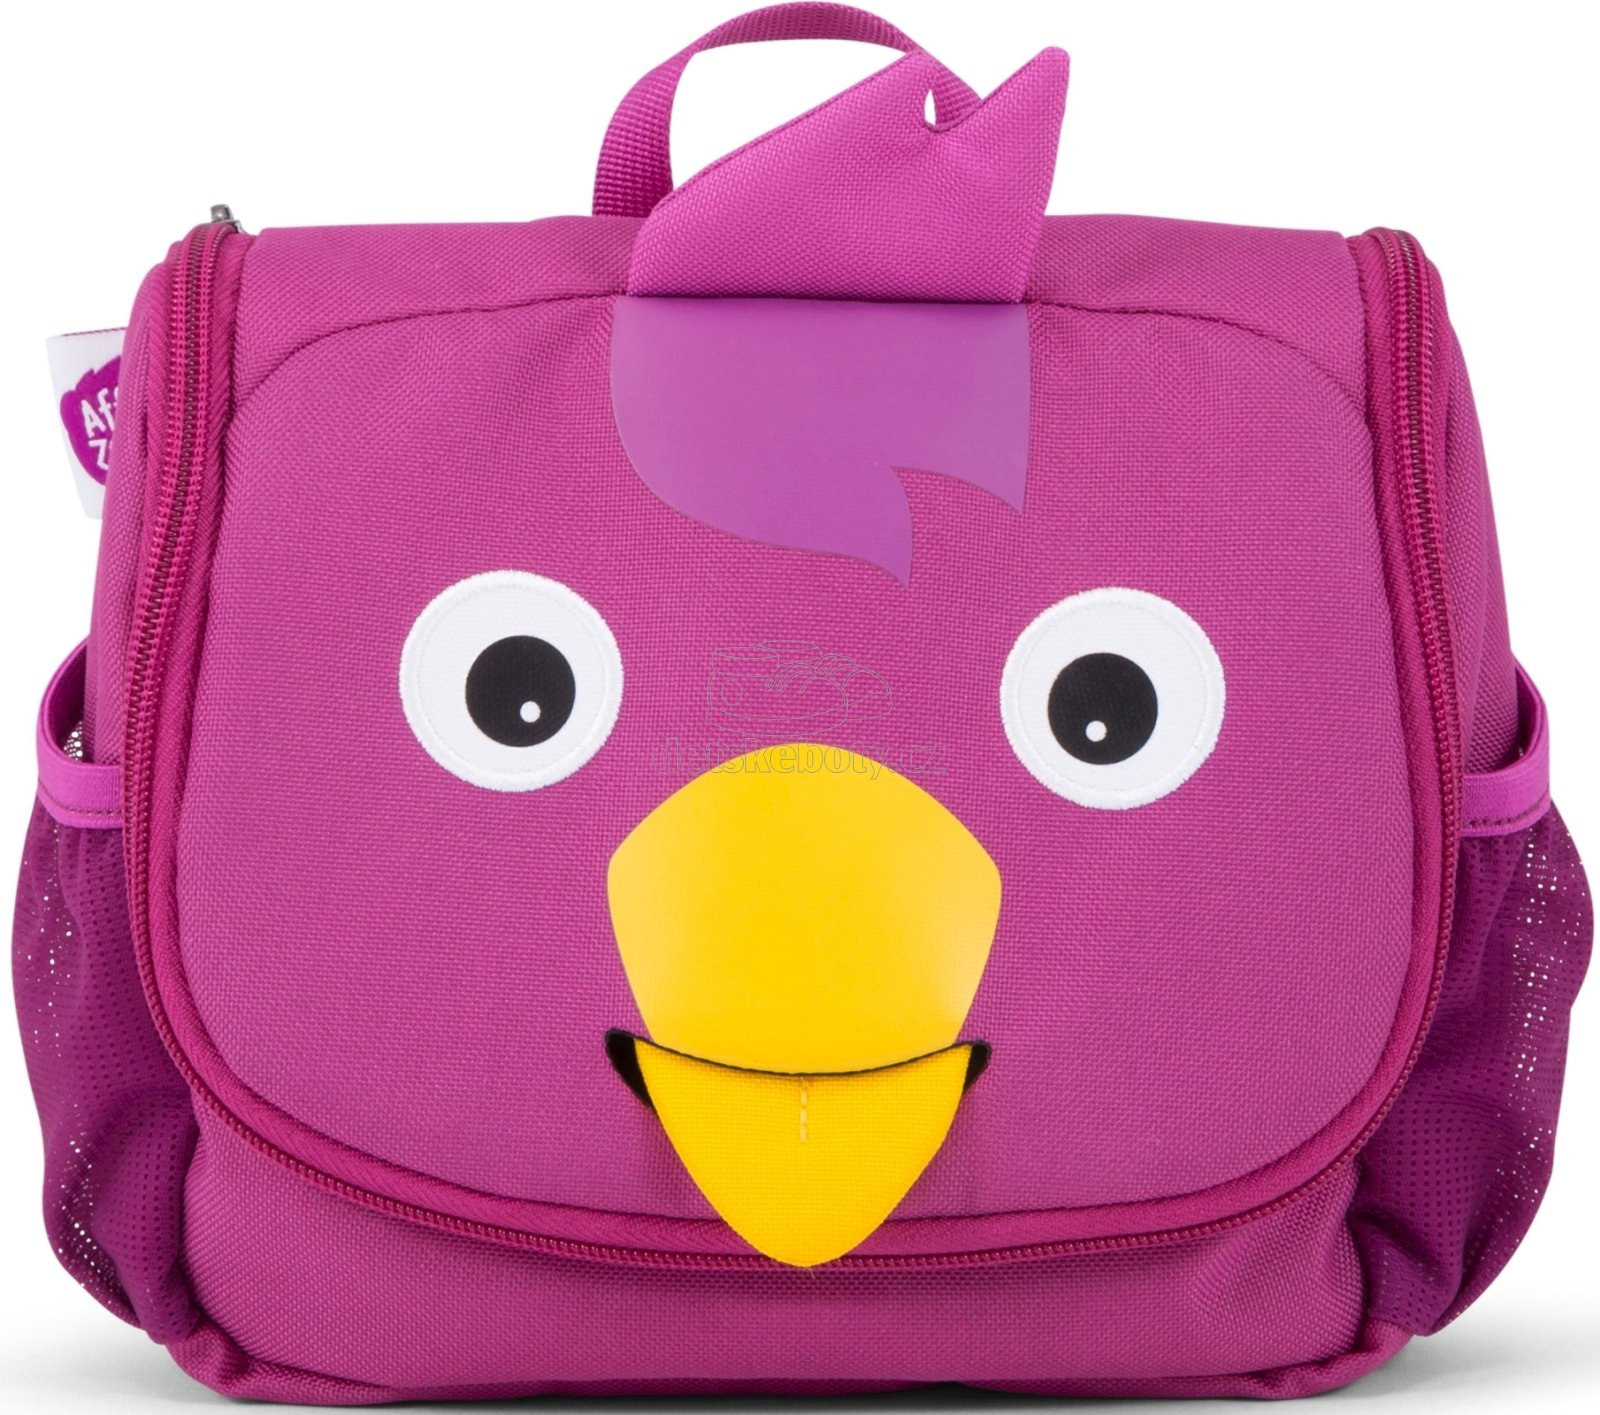 Gyerek kozmetikai táska Affenzahn Washbag Bella Bird - purple